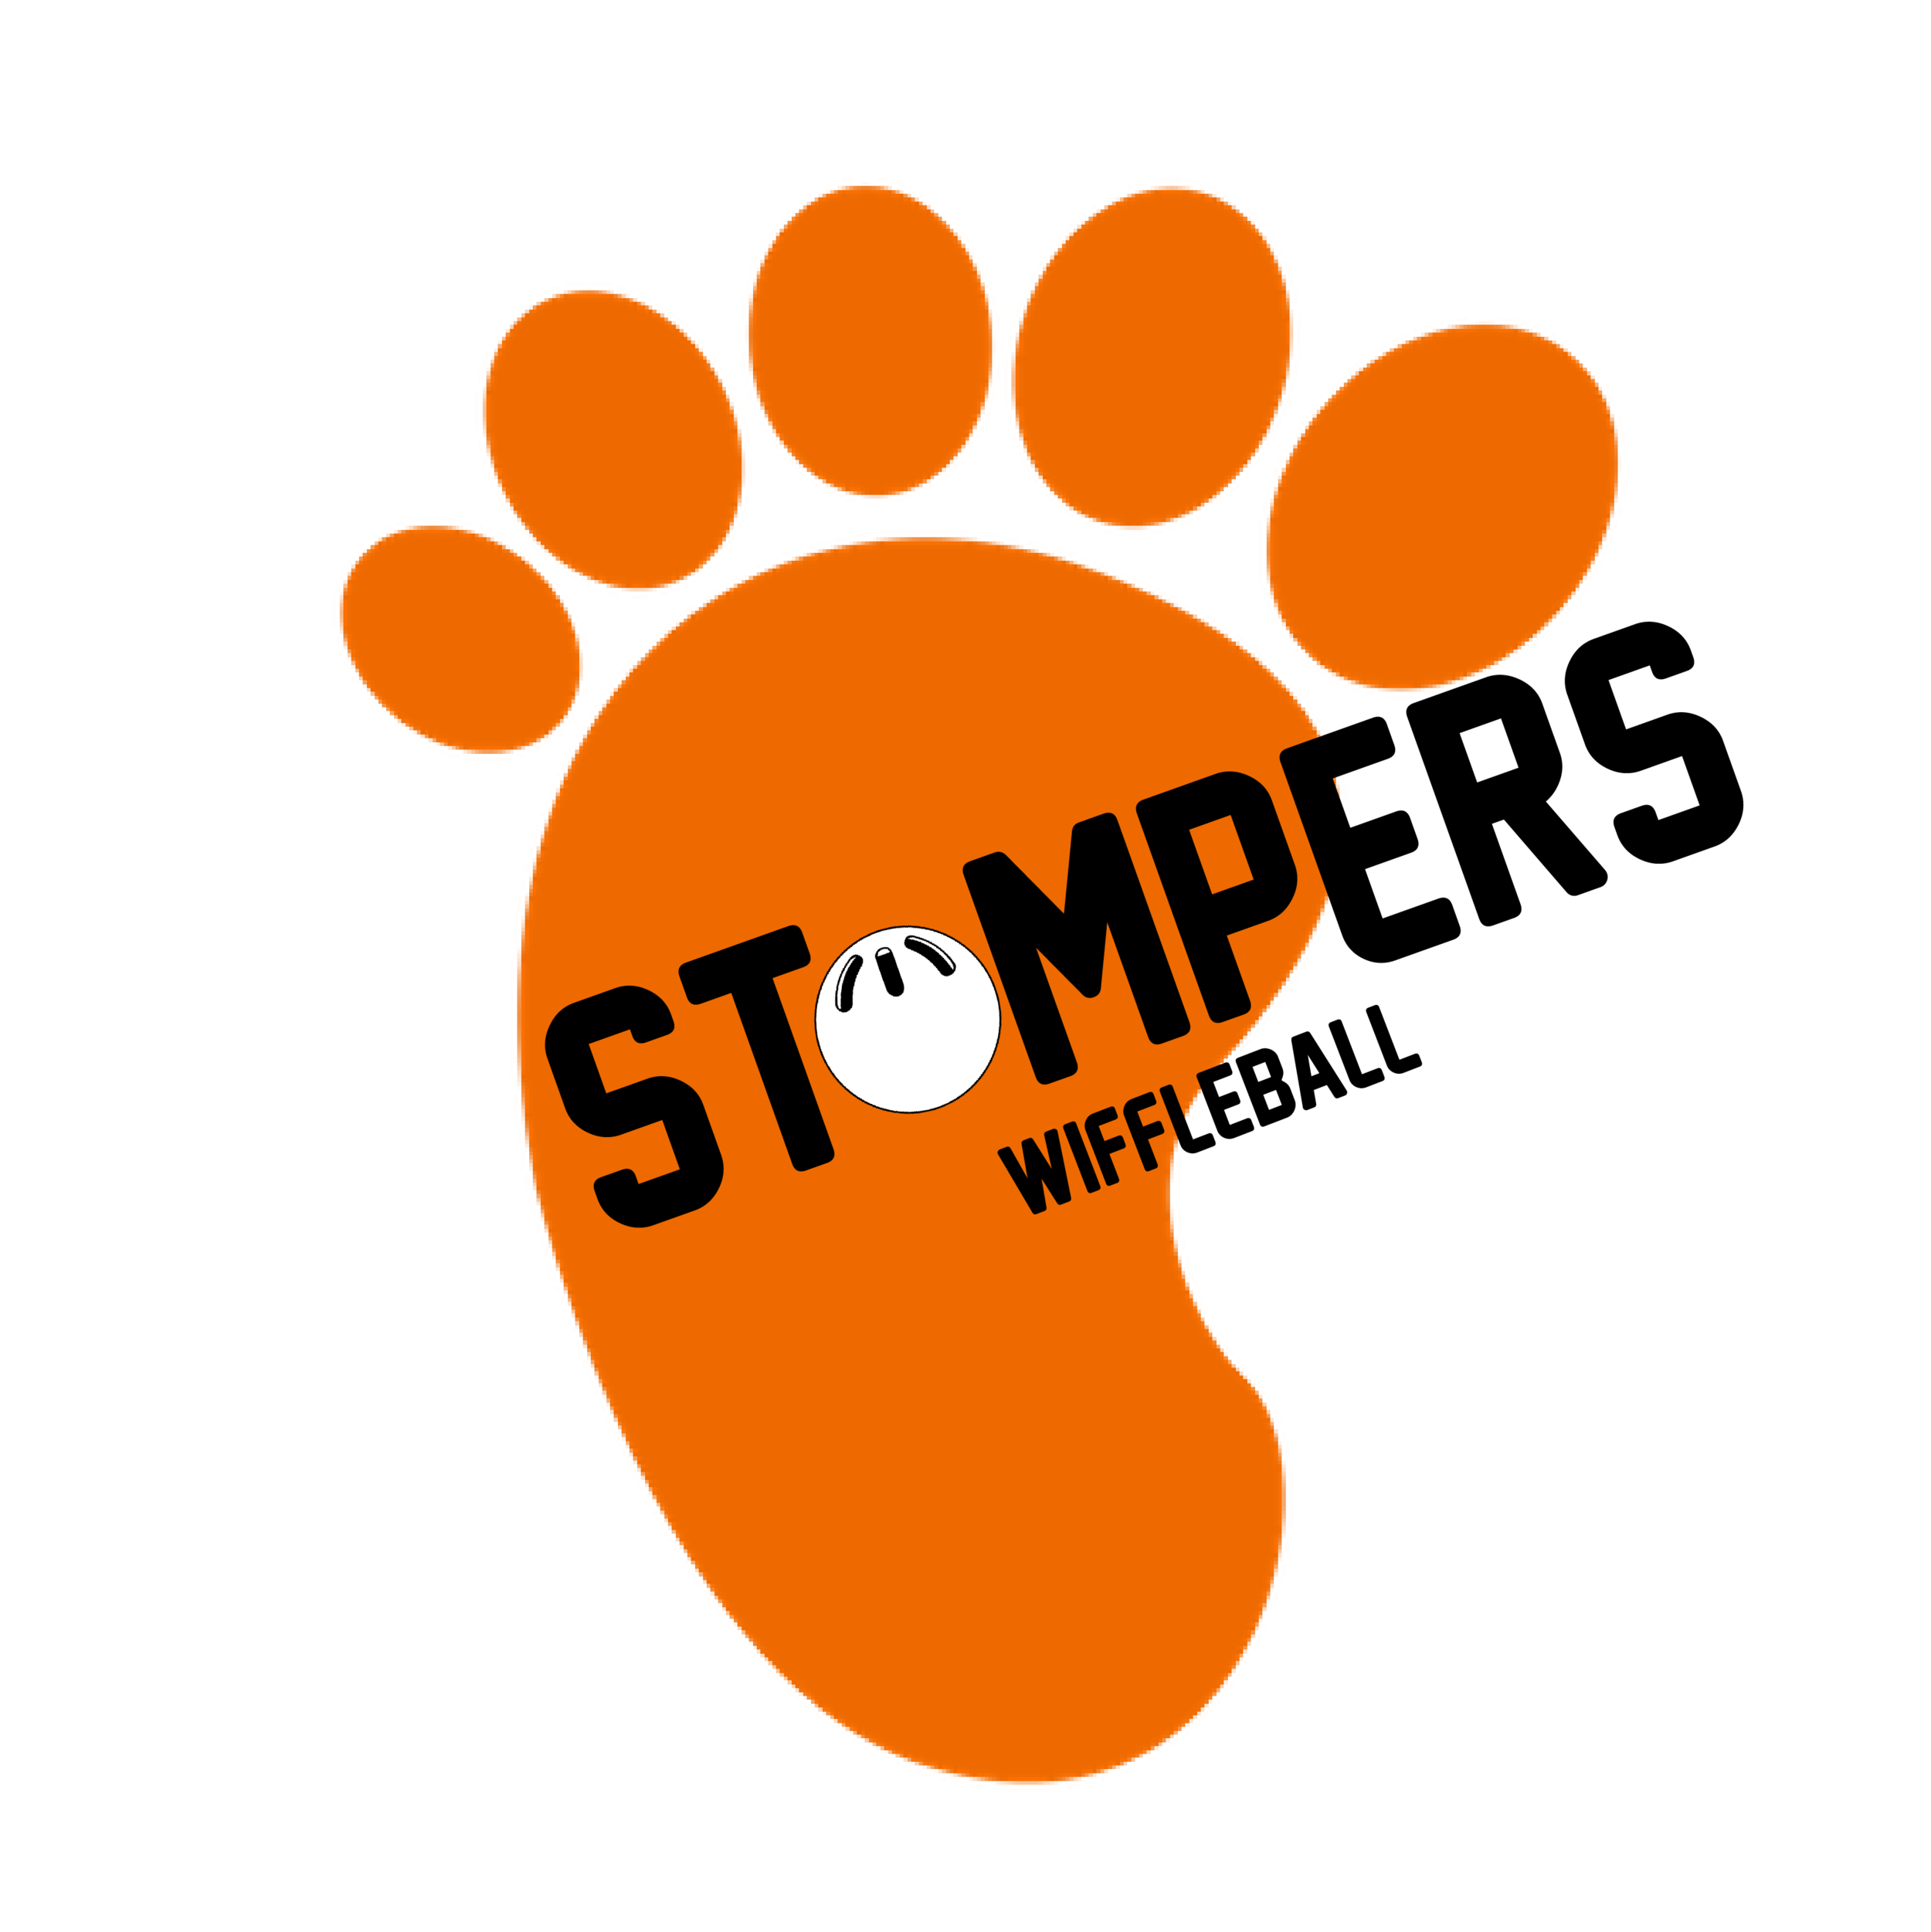 2018-01-28_working stompers logo.png